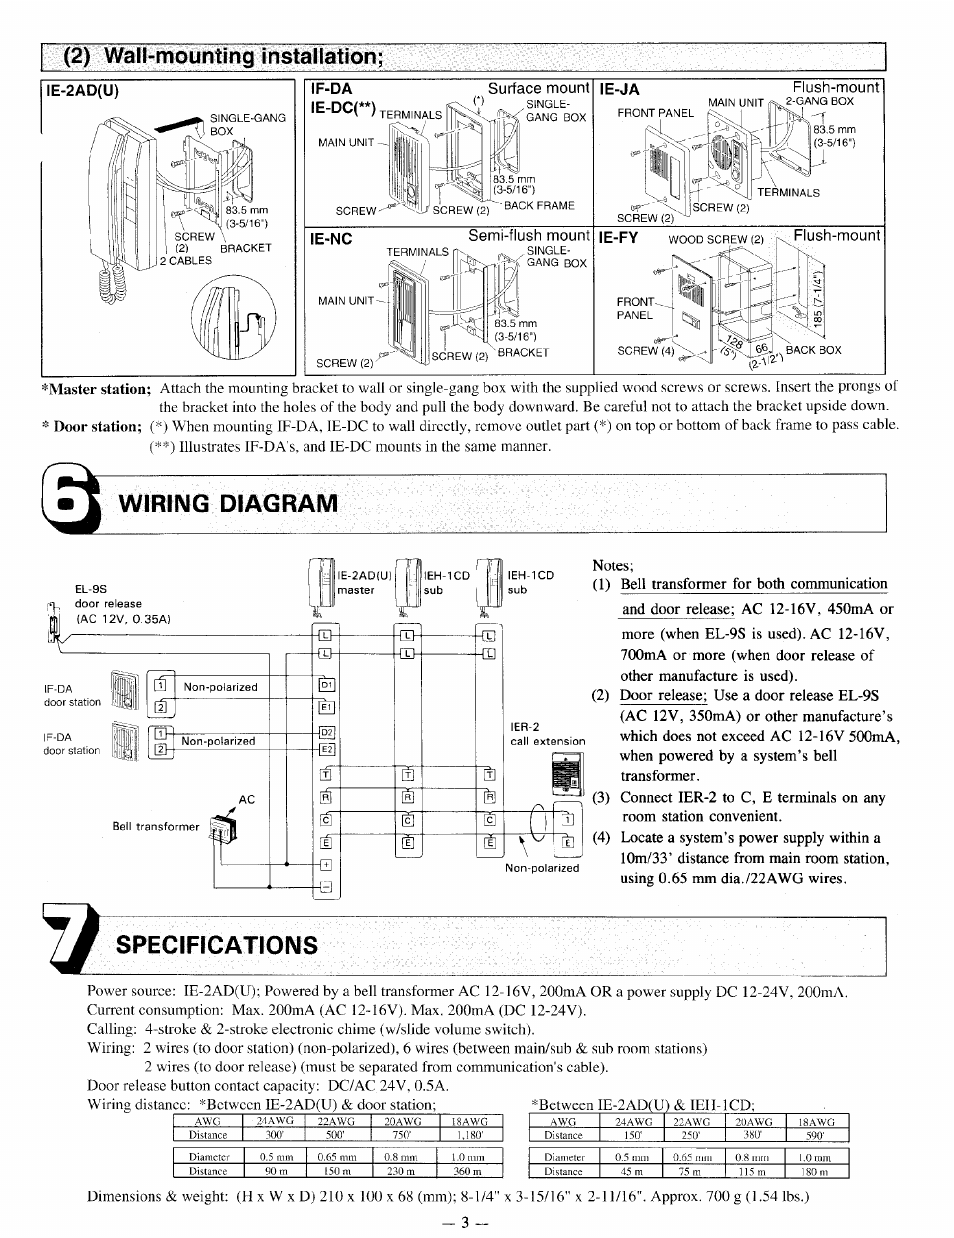 Wiring Diagram  Specifications  2  Wall